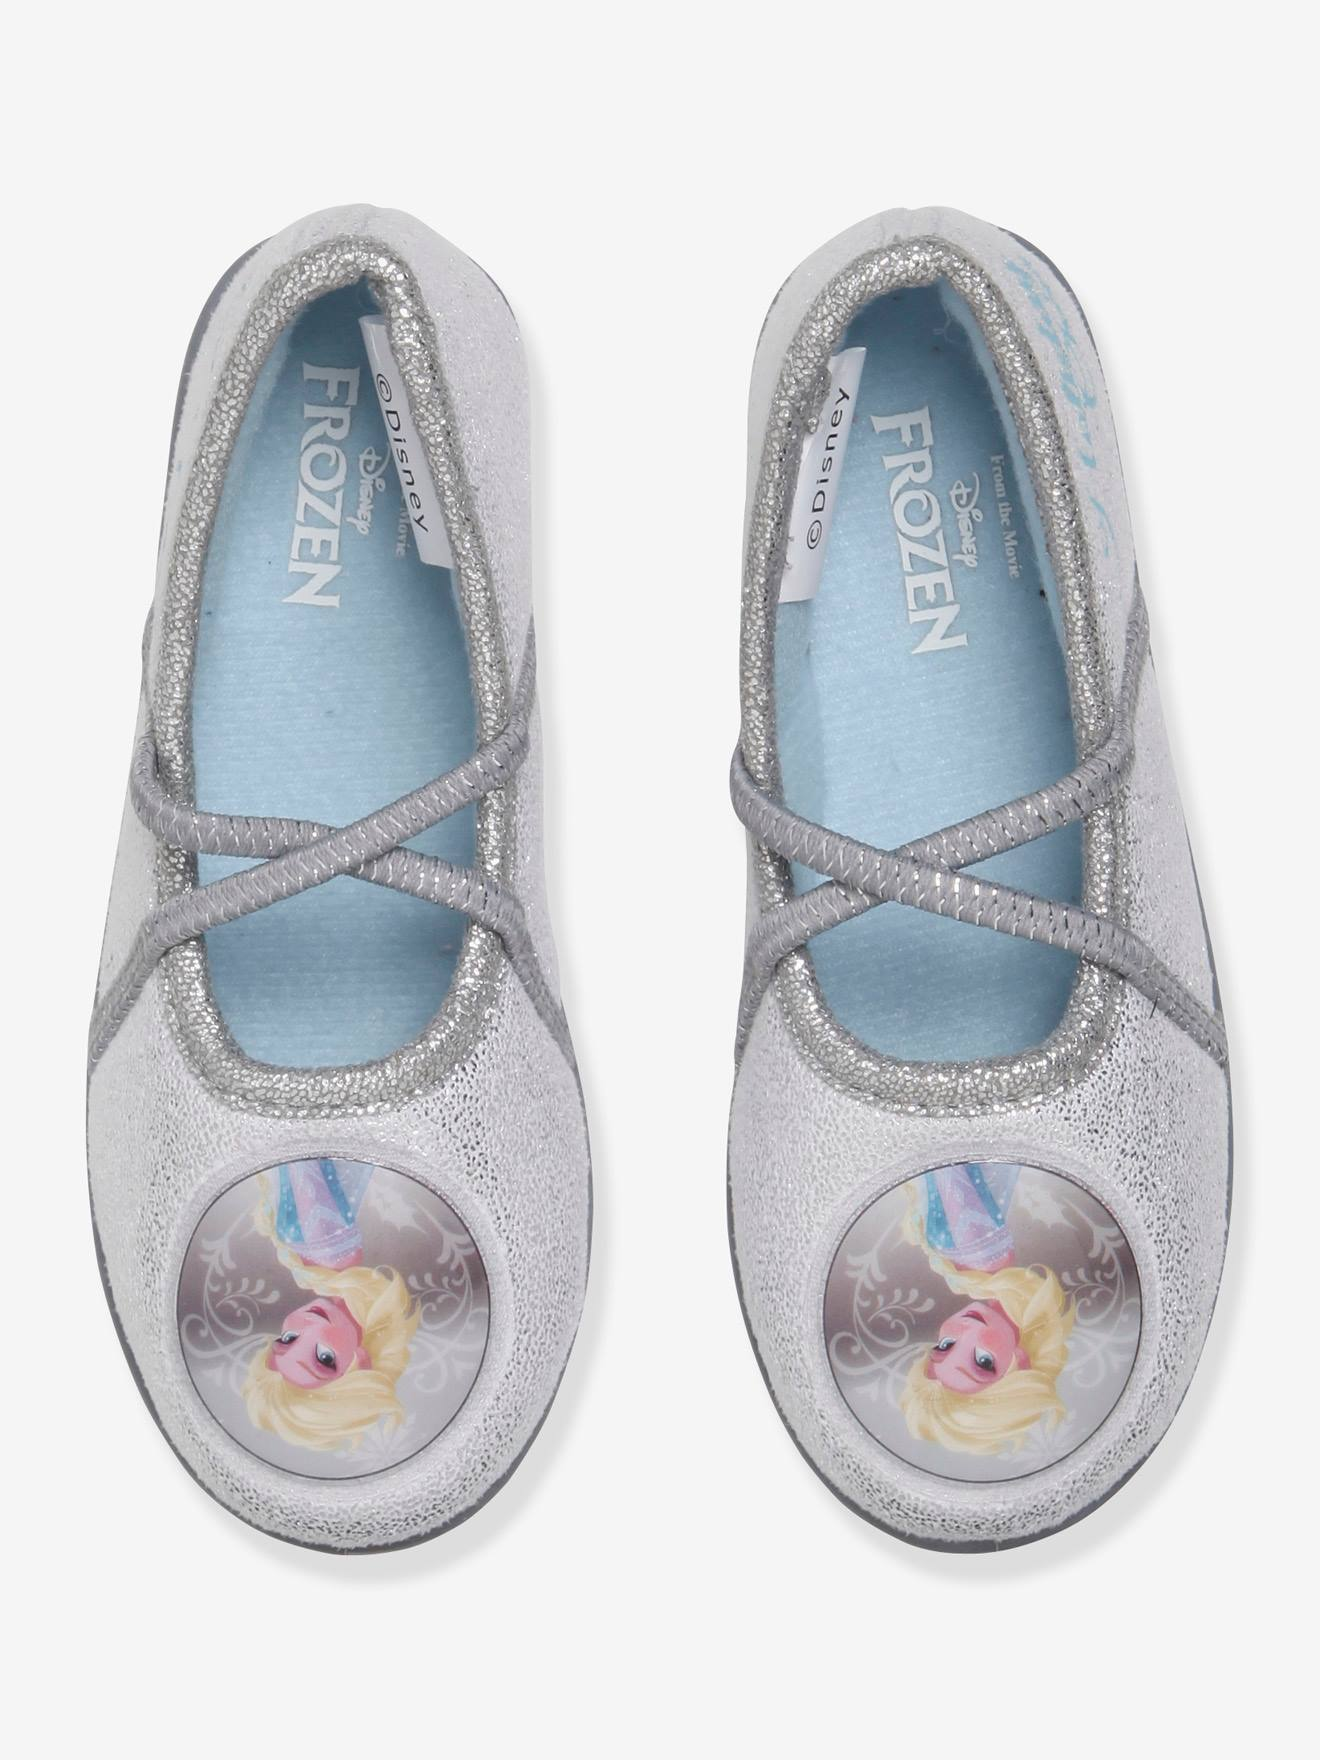 0dd8b4483dd58 Frozen® Mary Jane Shoes with Glitter, for Girls - grey light metallized,  Shoes